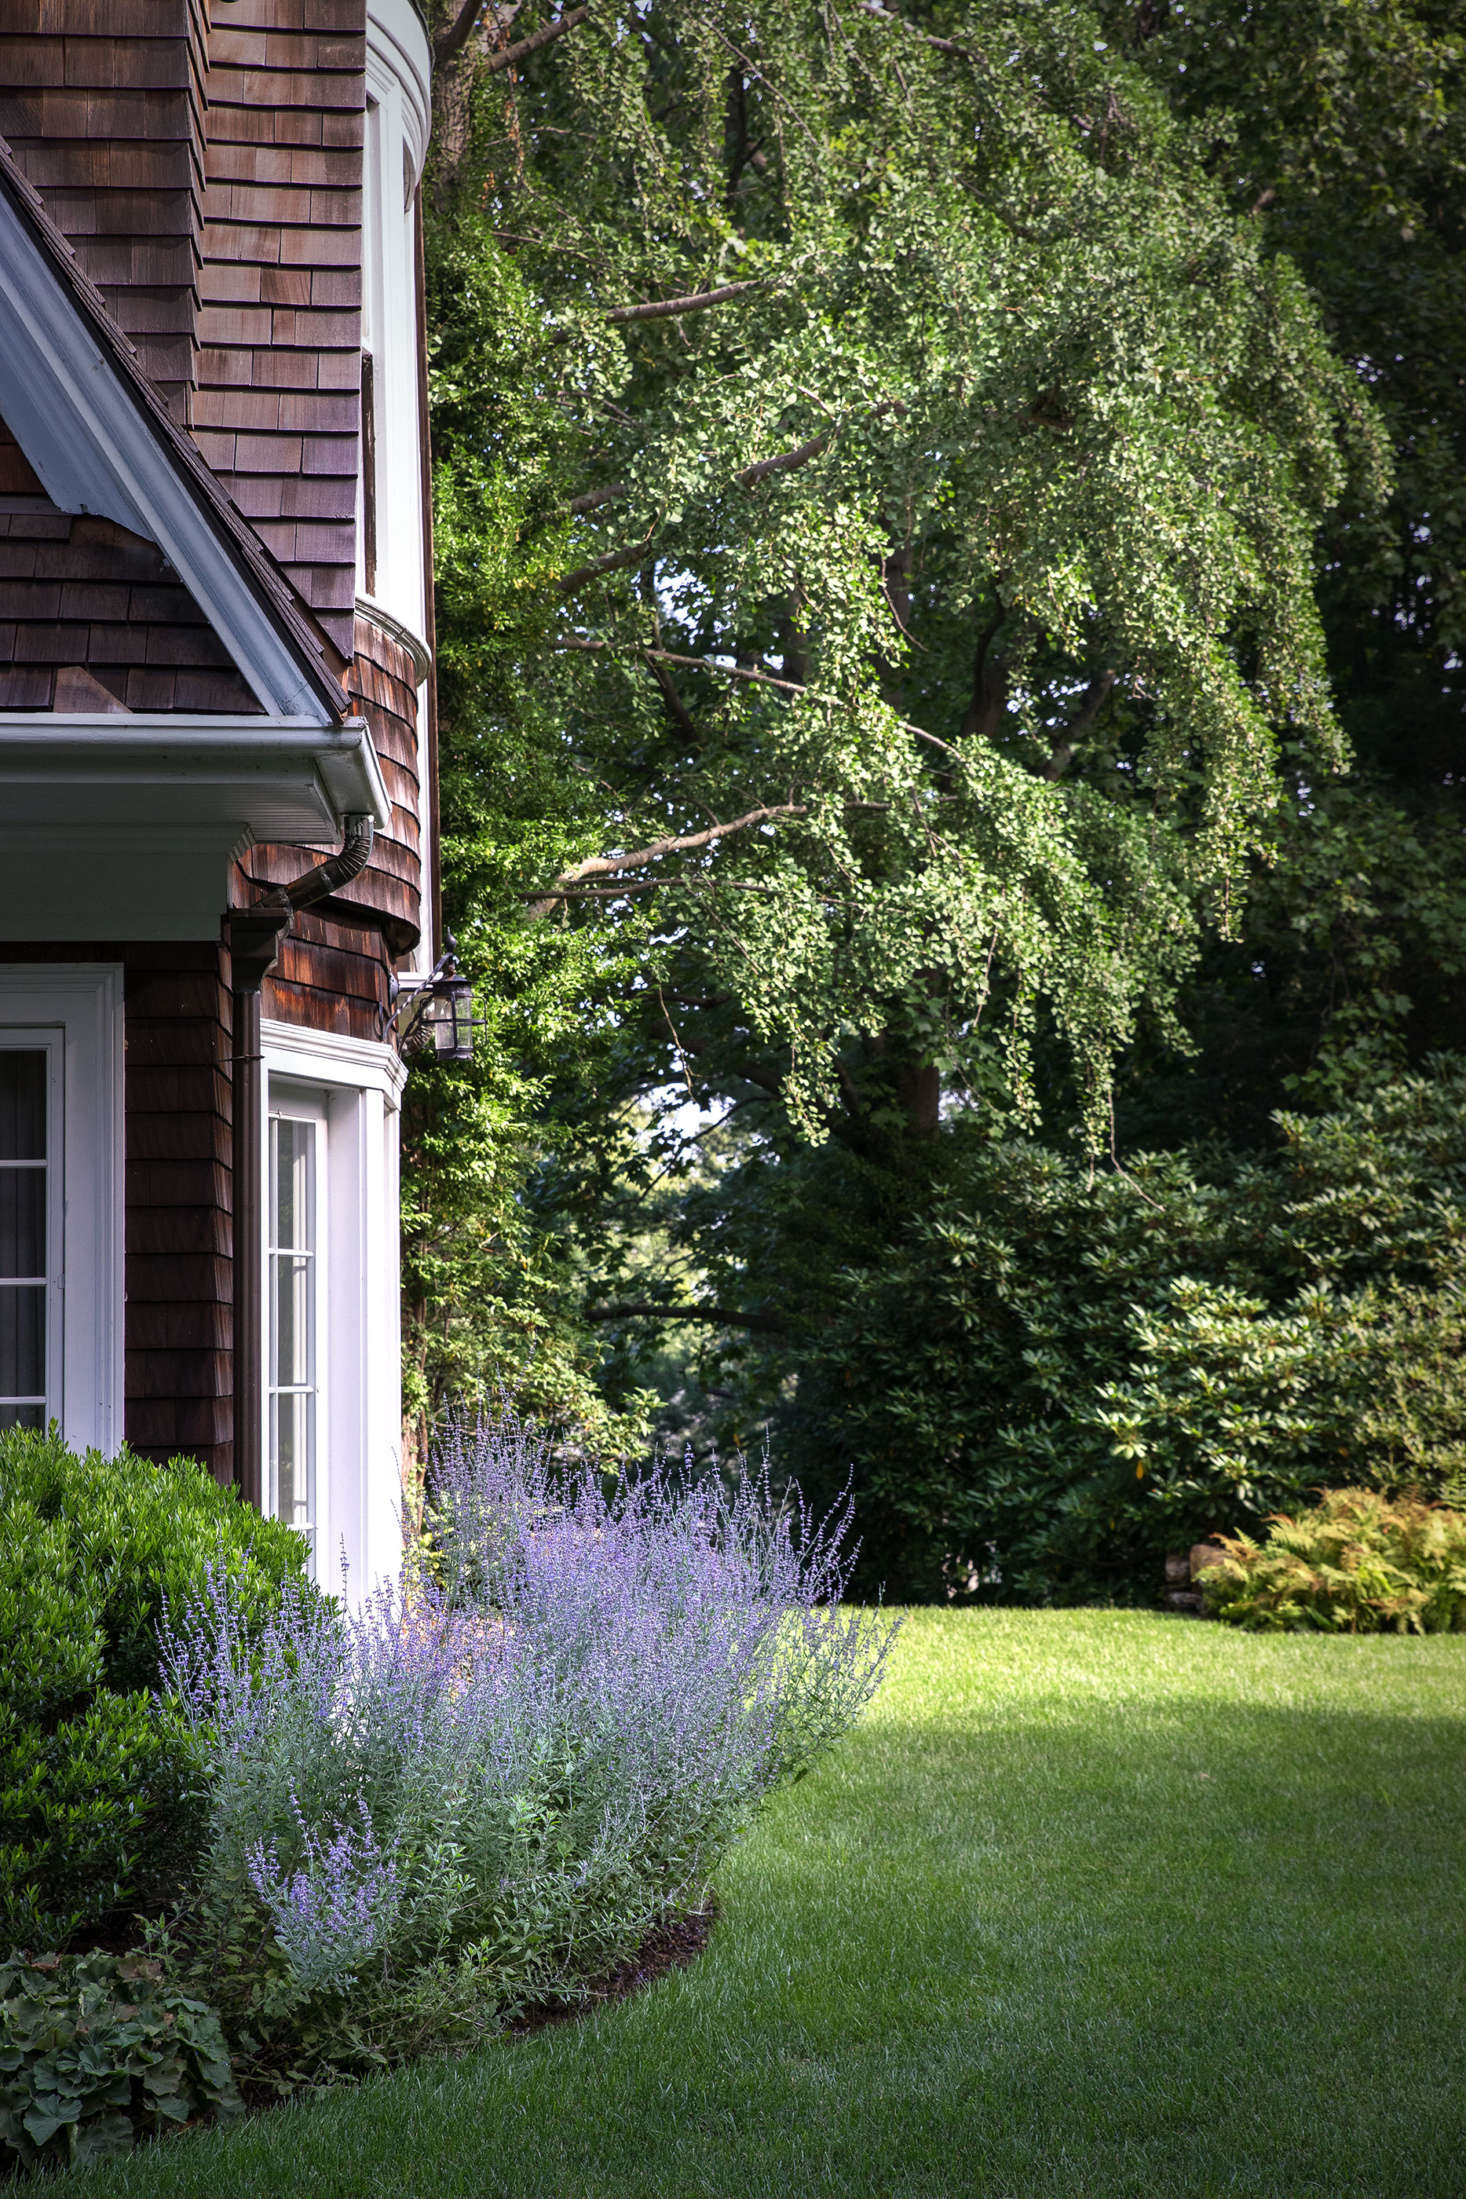 Russian sage grows in a bed that leads around the corner of the house towards the front of the property.